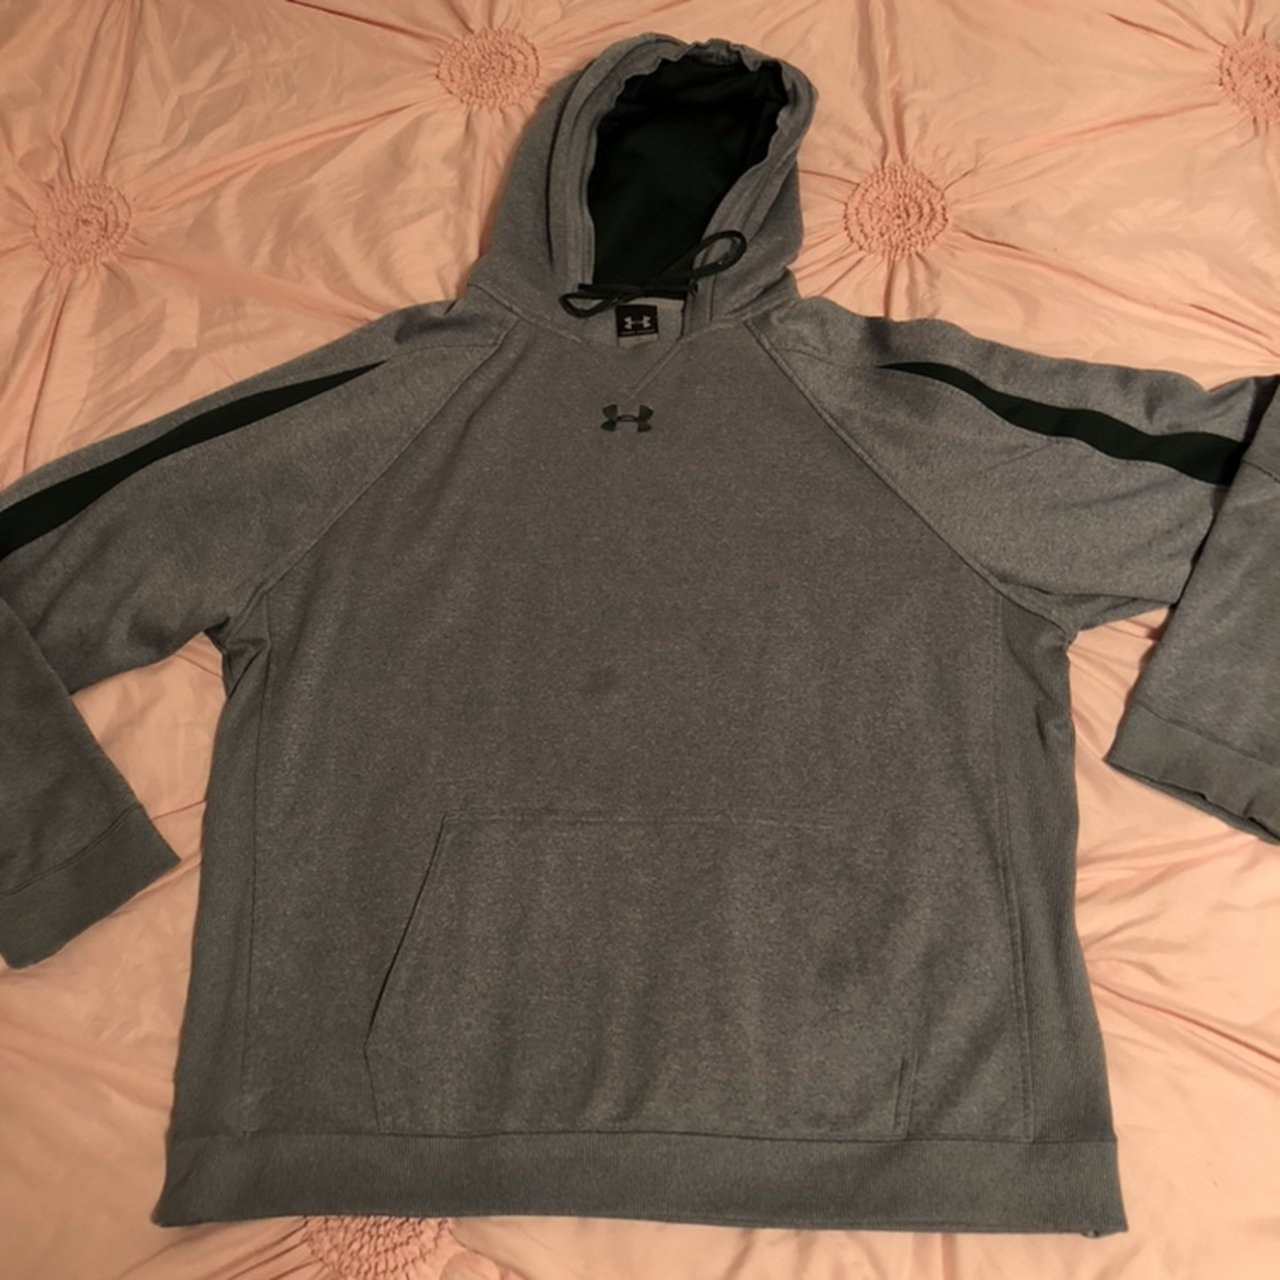 Men s Under Armour brand dri-fit hoodie. Size large. The are - Depop a2fbd5aa71a9